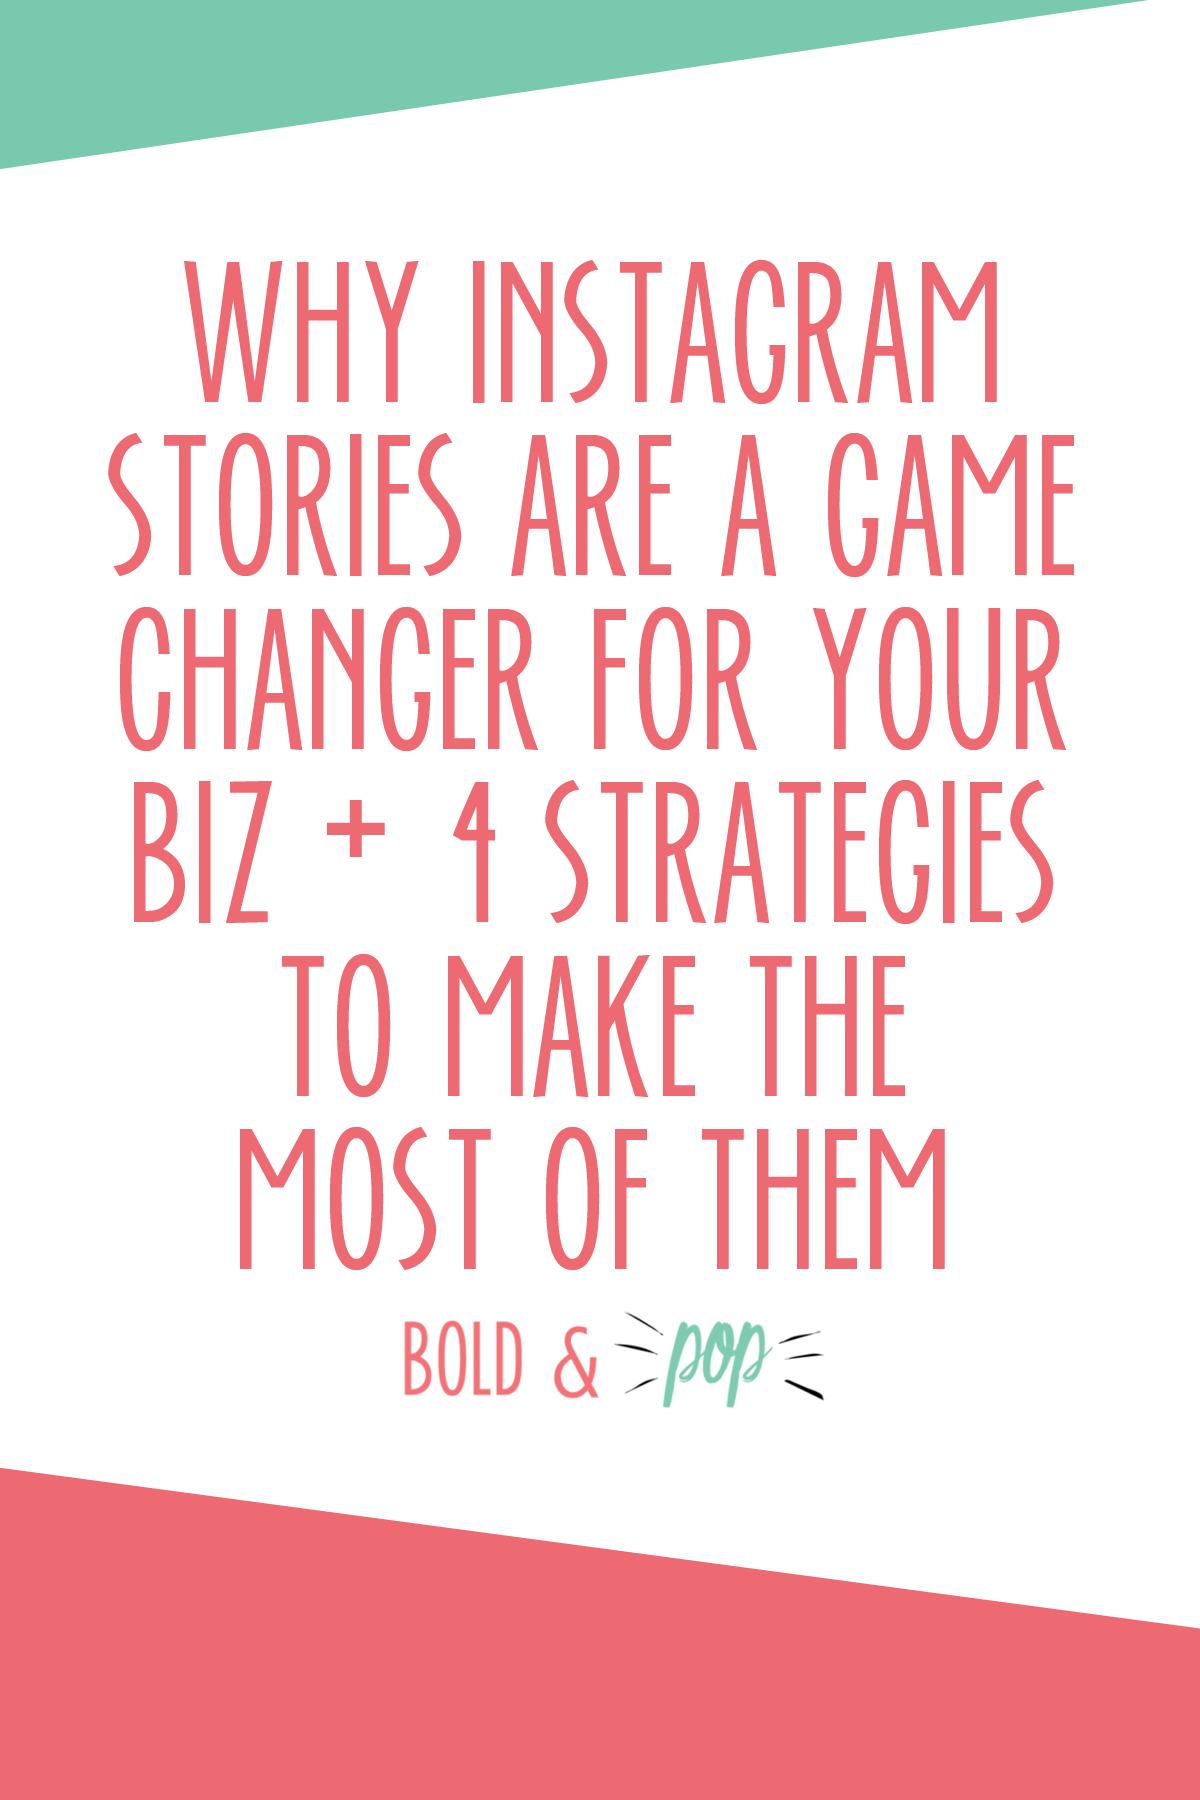 Bold & Pop :: Why Instagram Stories are a Game Changer for your Biz + 4 Strategies to Make the Most of Them